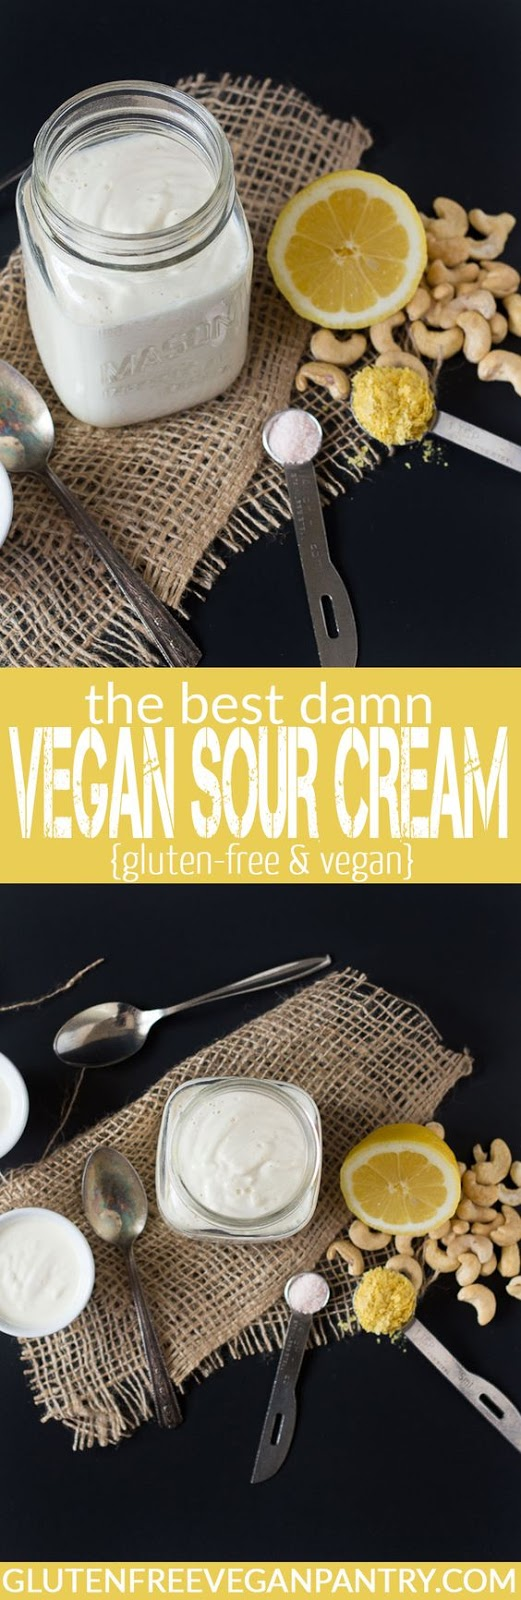 THE BEST DAMN VEGAN SOUR CREAM